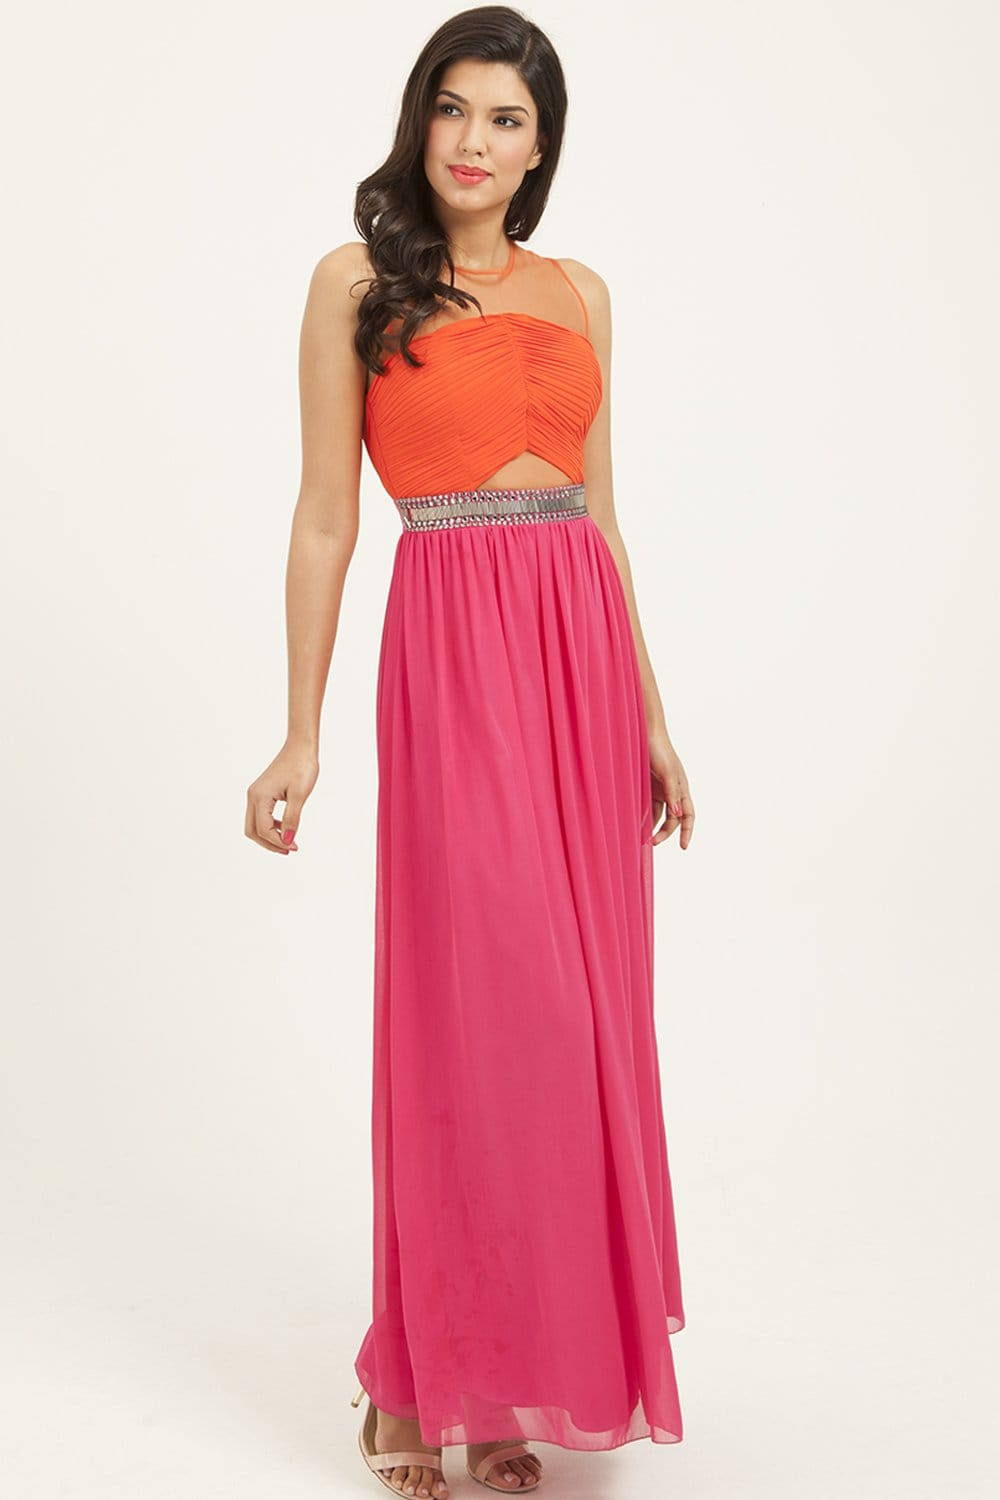 Pink and Orange Dress | Dress images